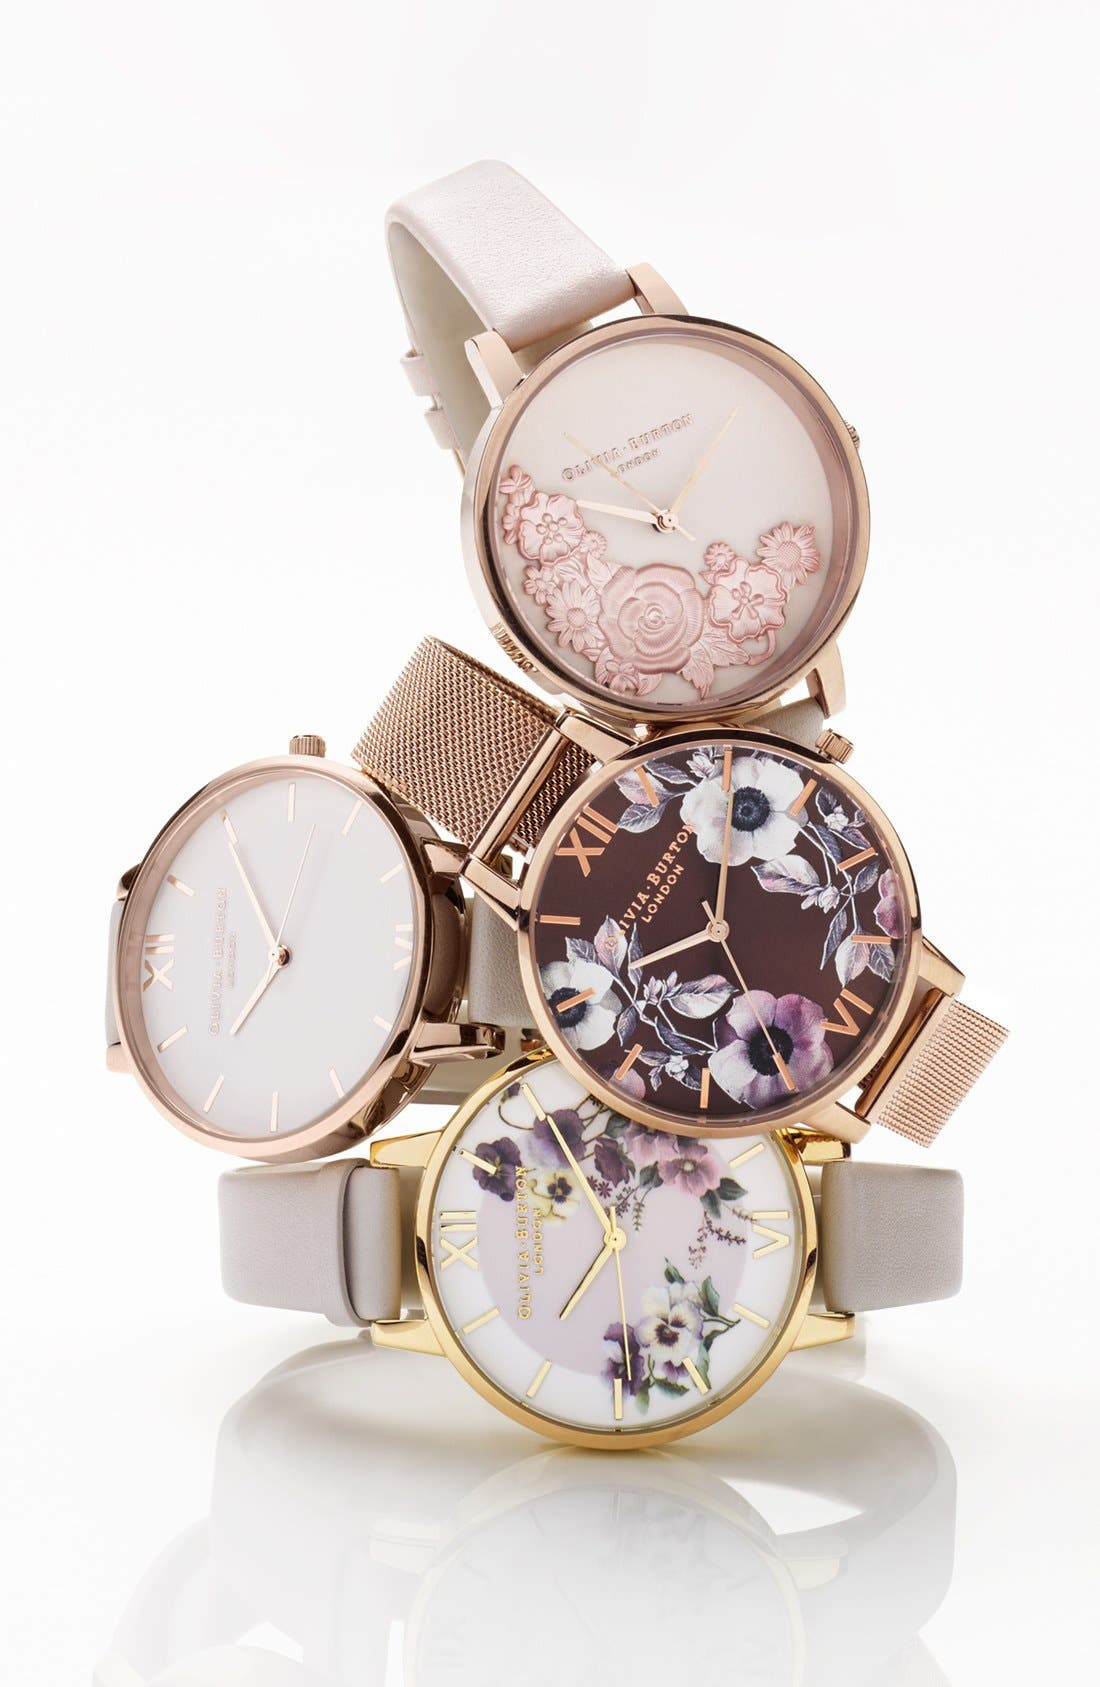 Begin to Blush Leather Strap Watch, 38mm,                             Alternate thumbnail 7, color,                             BLUSH/ ROSE GOLD